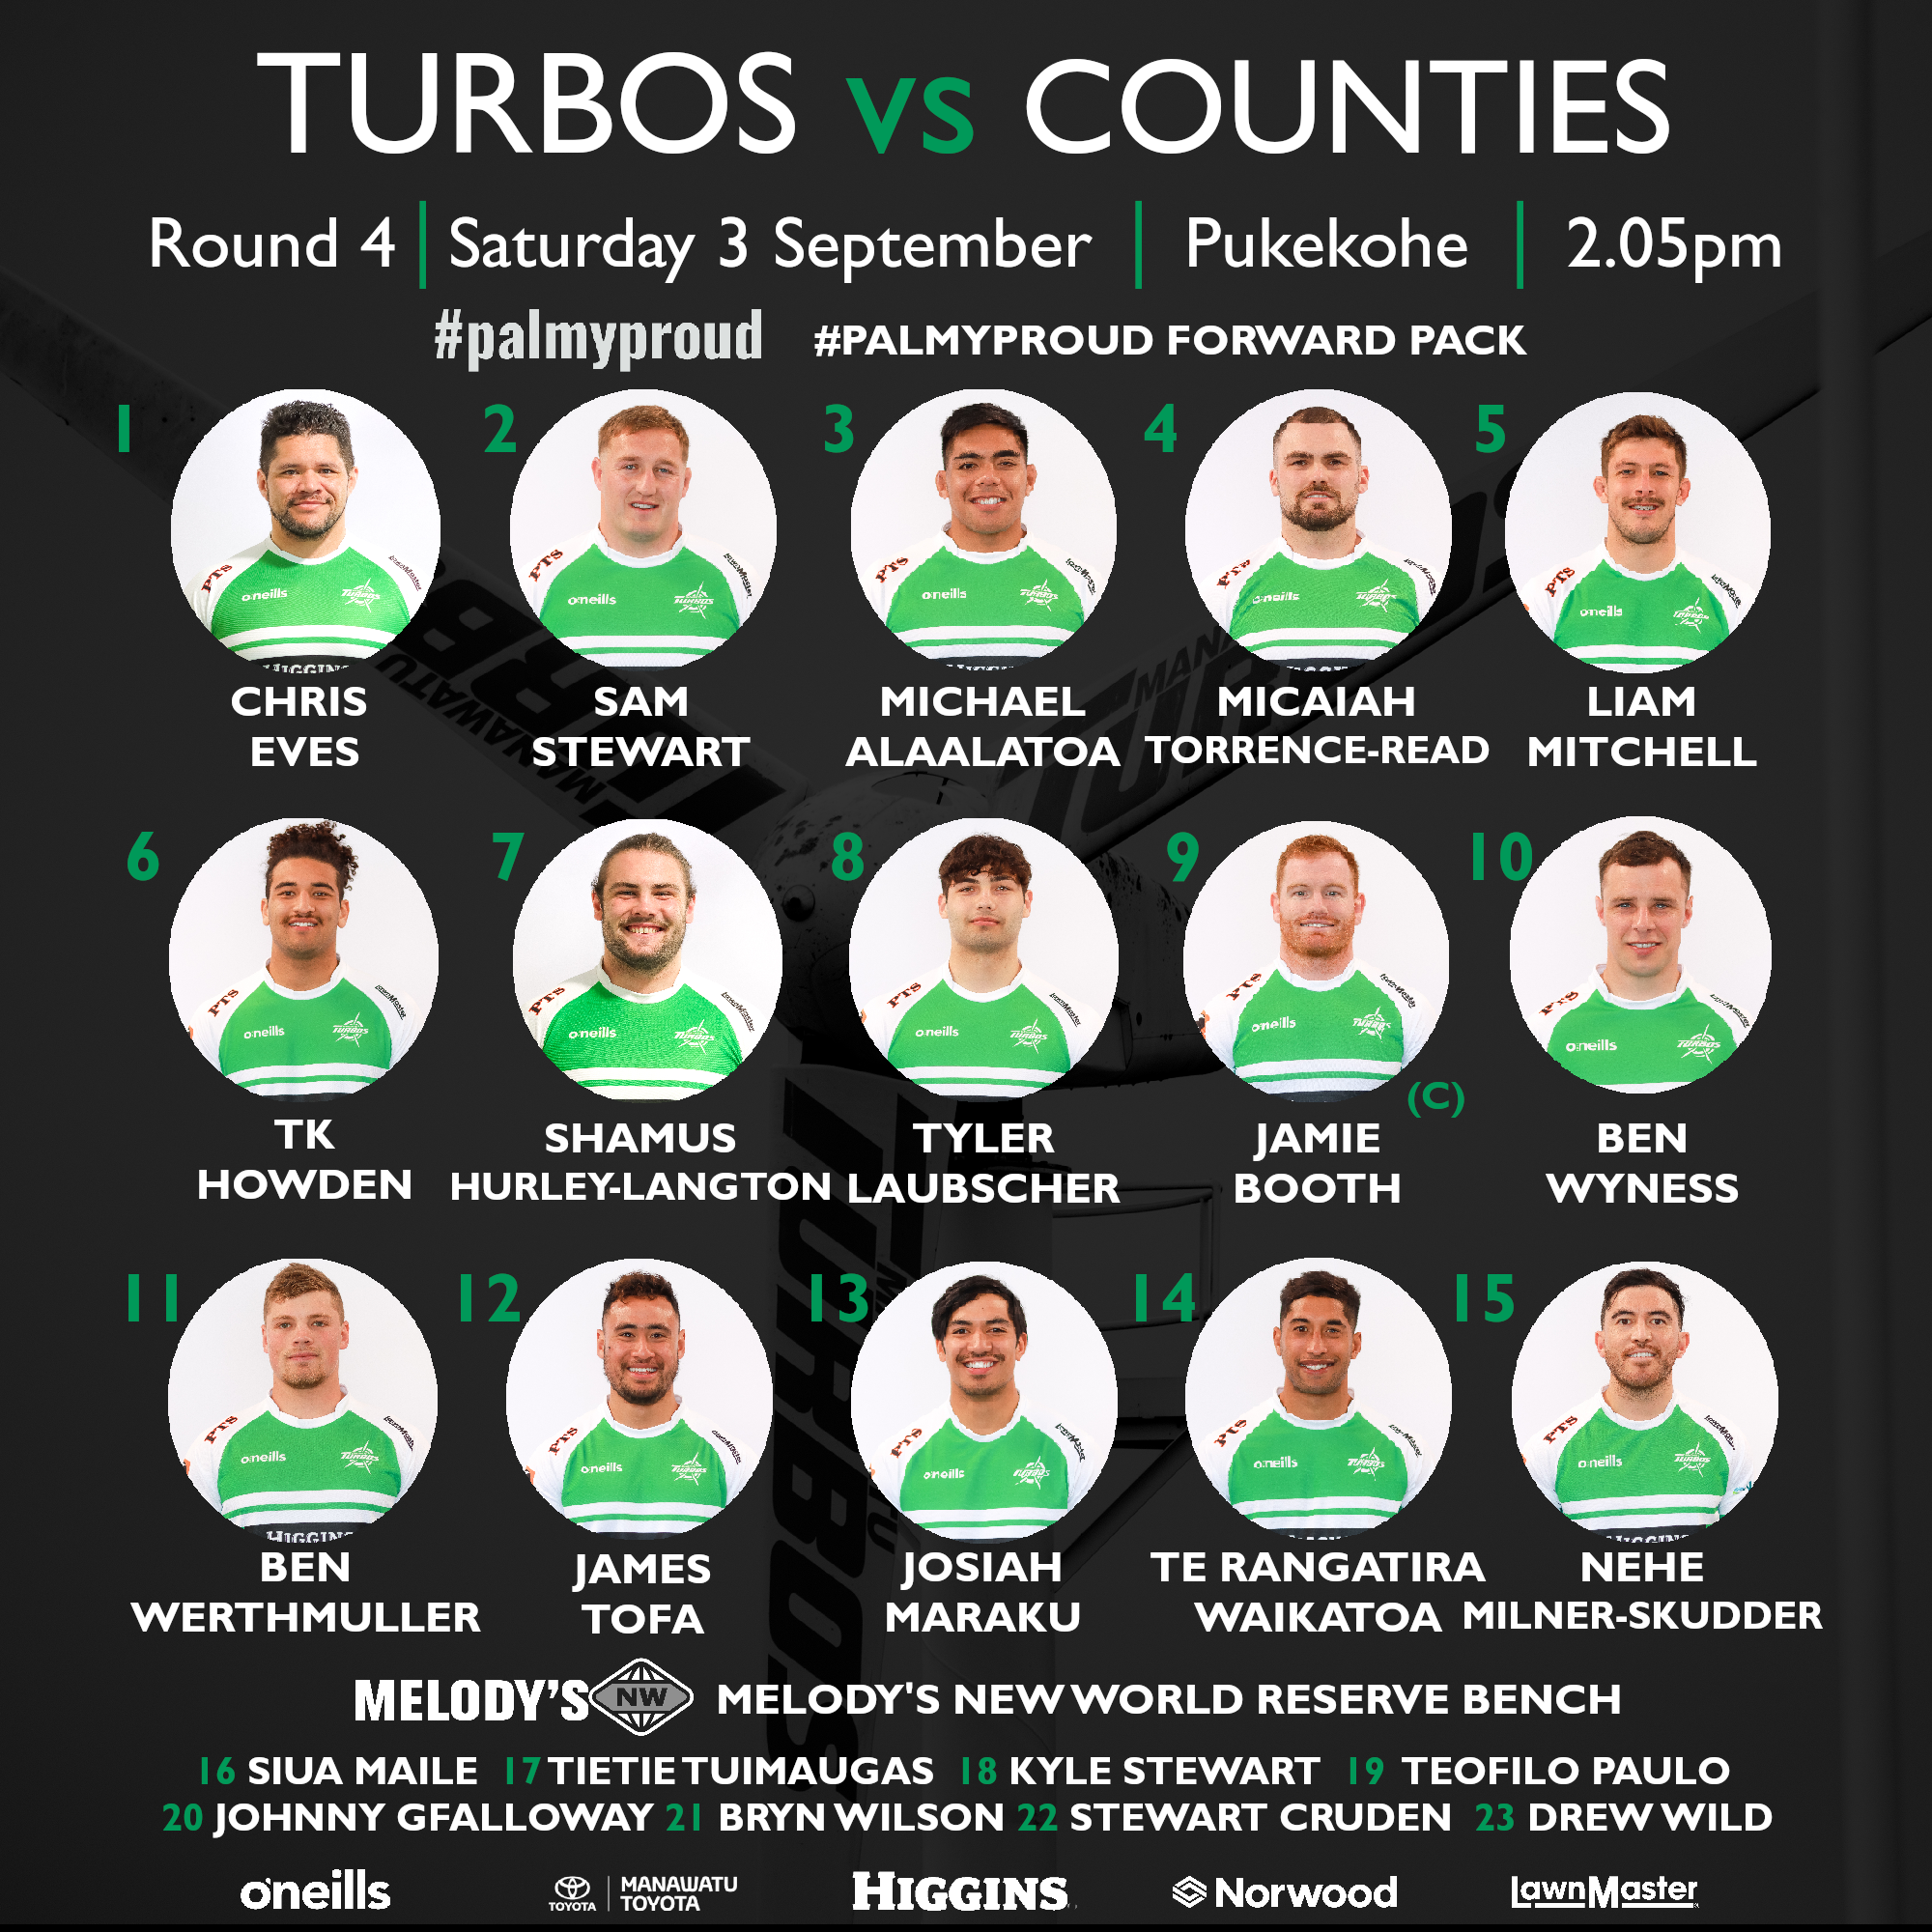 Fresh faces aplenty for Turbos